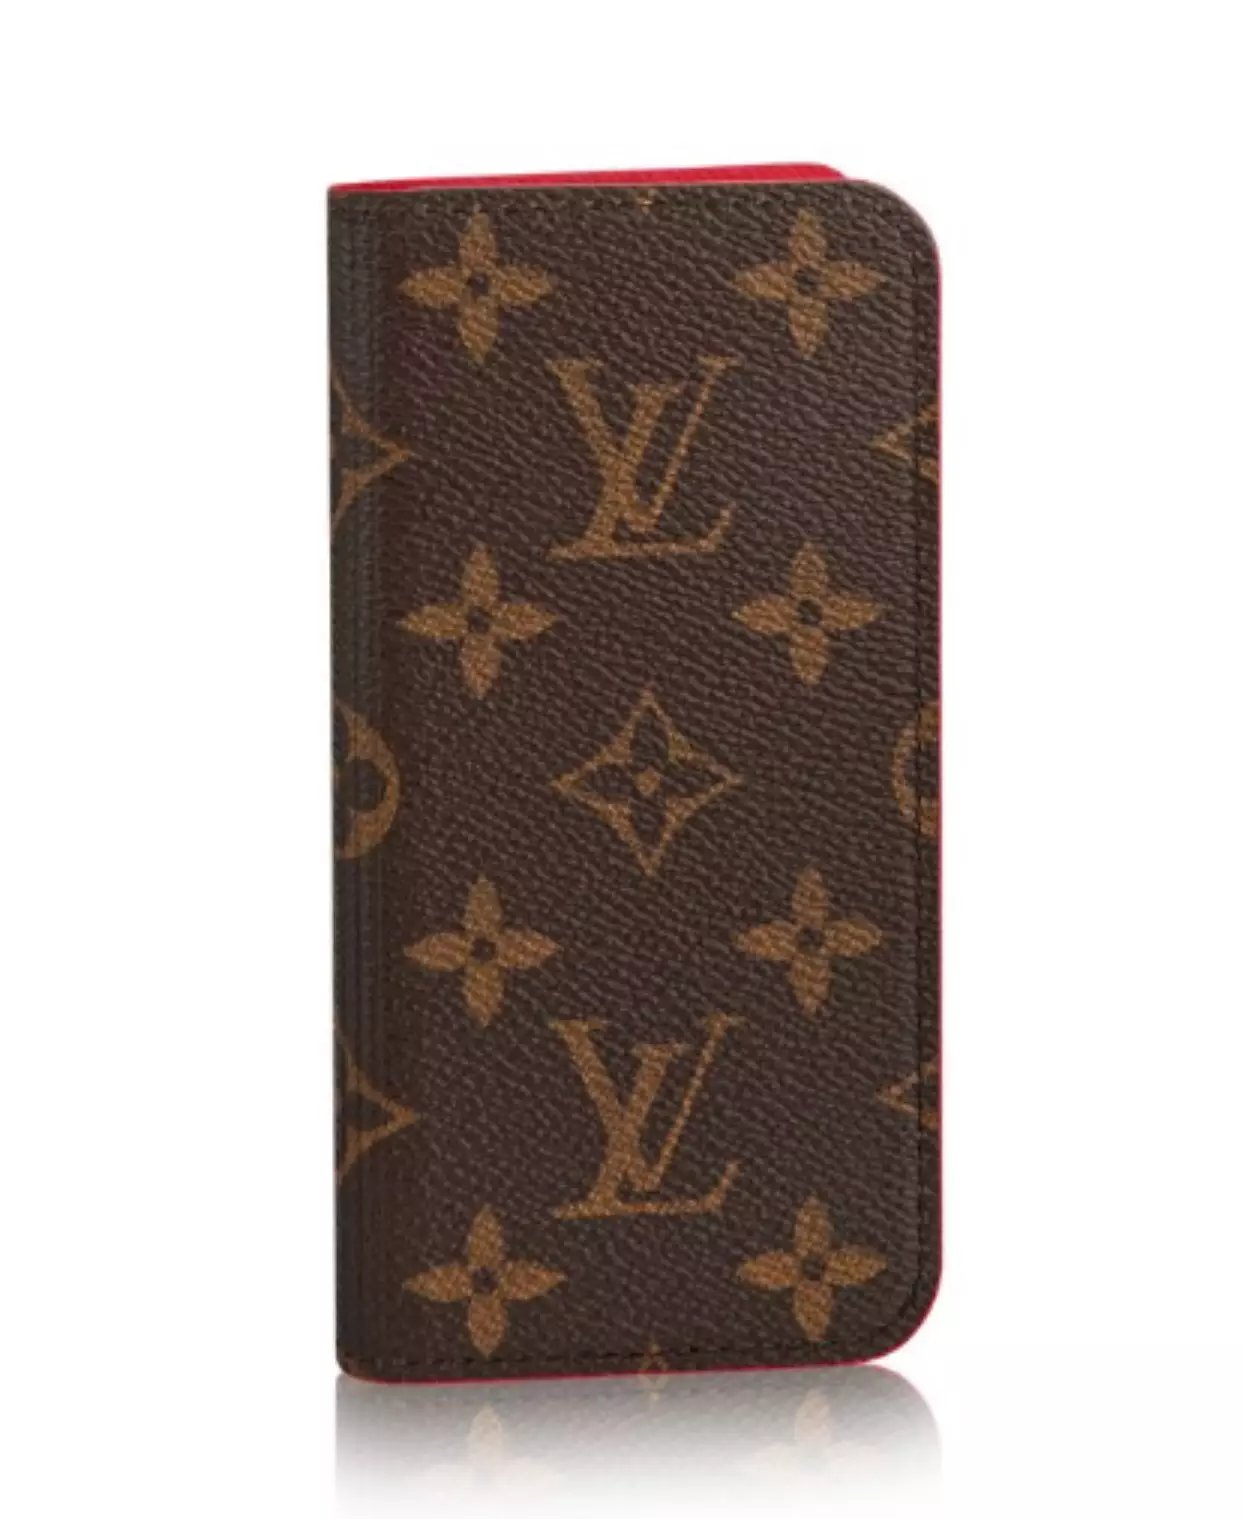 schutzhülle iphone iphone hülle online shop Louis Vuitton iphone7 Plus hülle iphone was7rdichte hülle iphone hülen iphone 7 Plus hüllen kaufen handyhülle iphone 7 Plus  iphone 7 Plus design hülle handyhüller 7lber gestalten